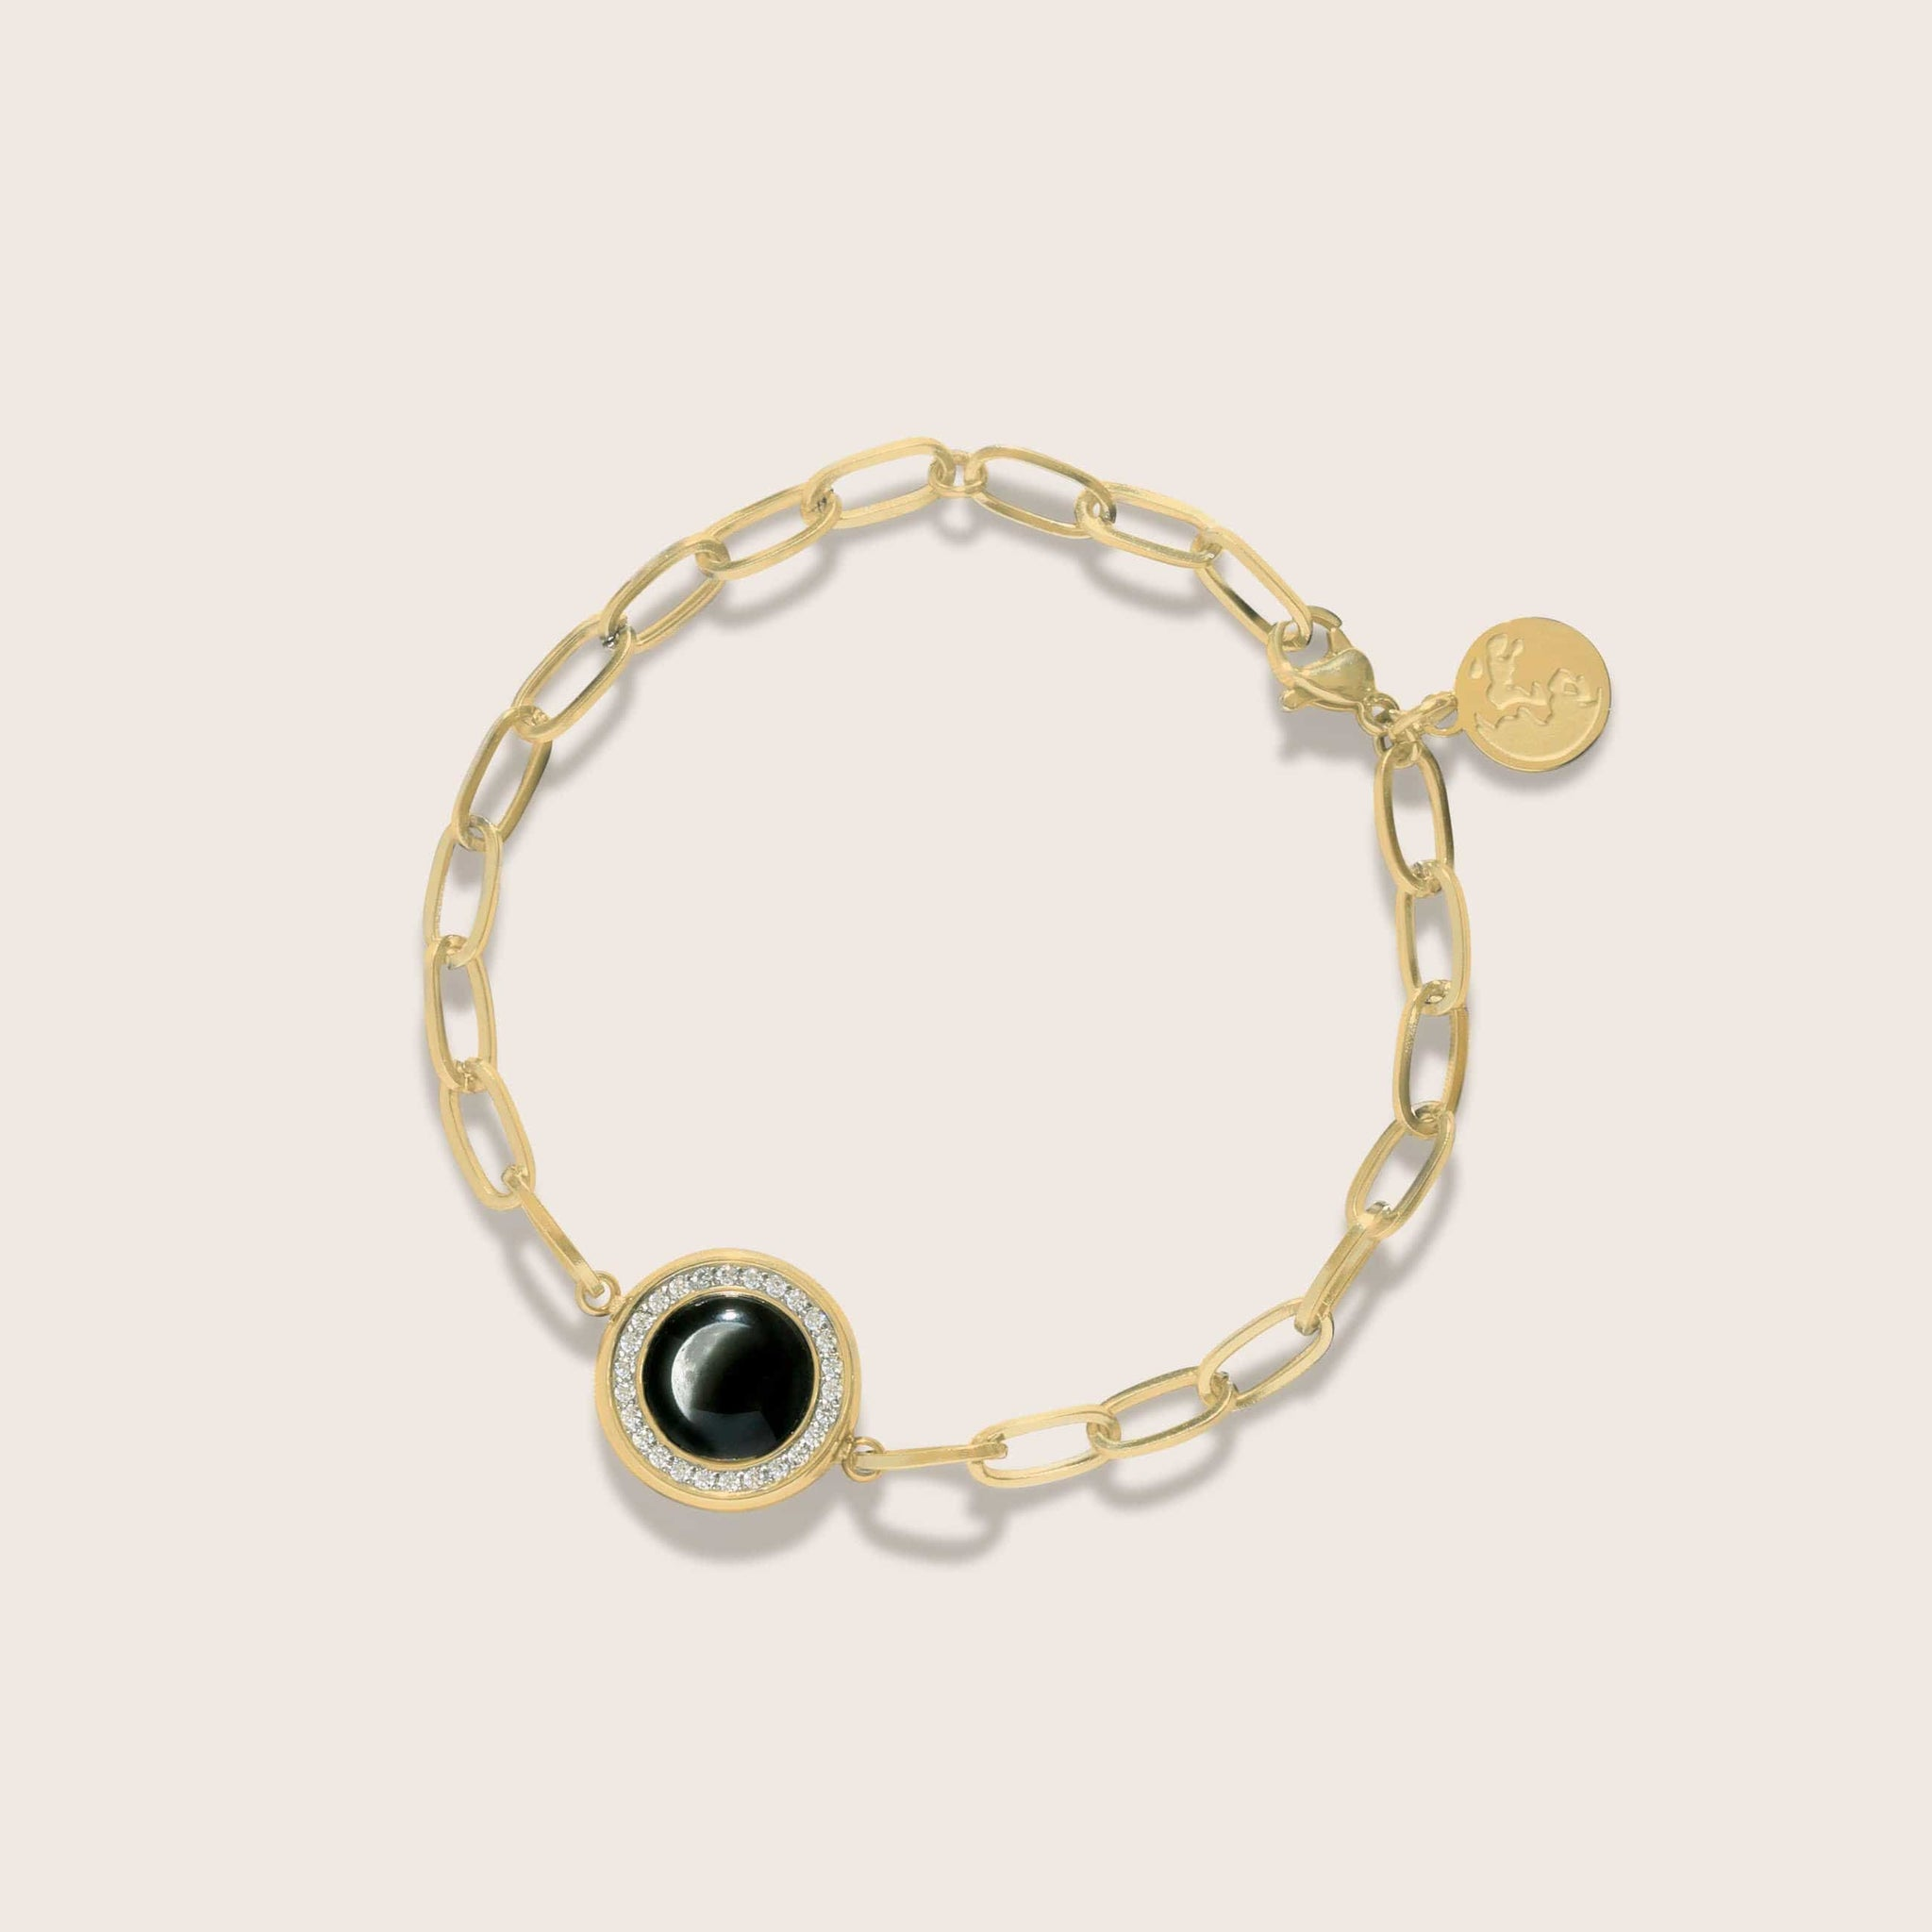 The Asterism Link Bracelet in Gold